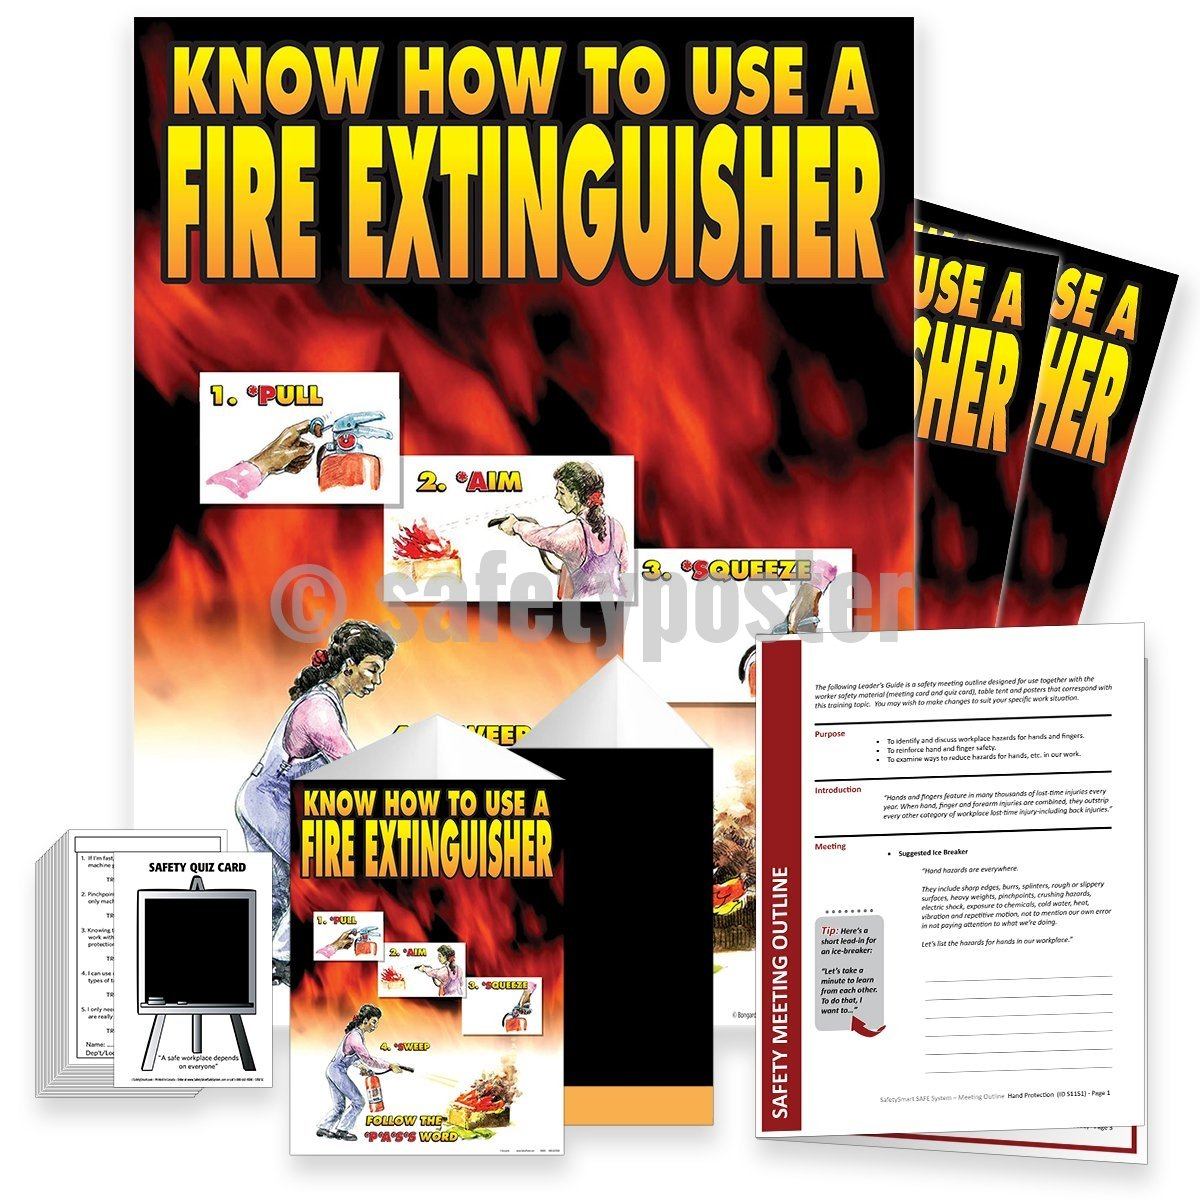 Safety Meeting Kit - Know How To Use A Fire Extinguisher Kits